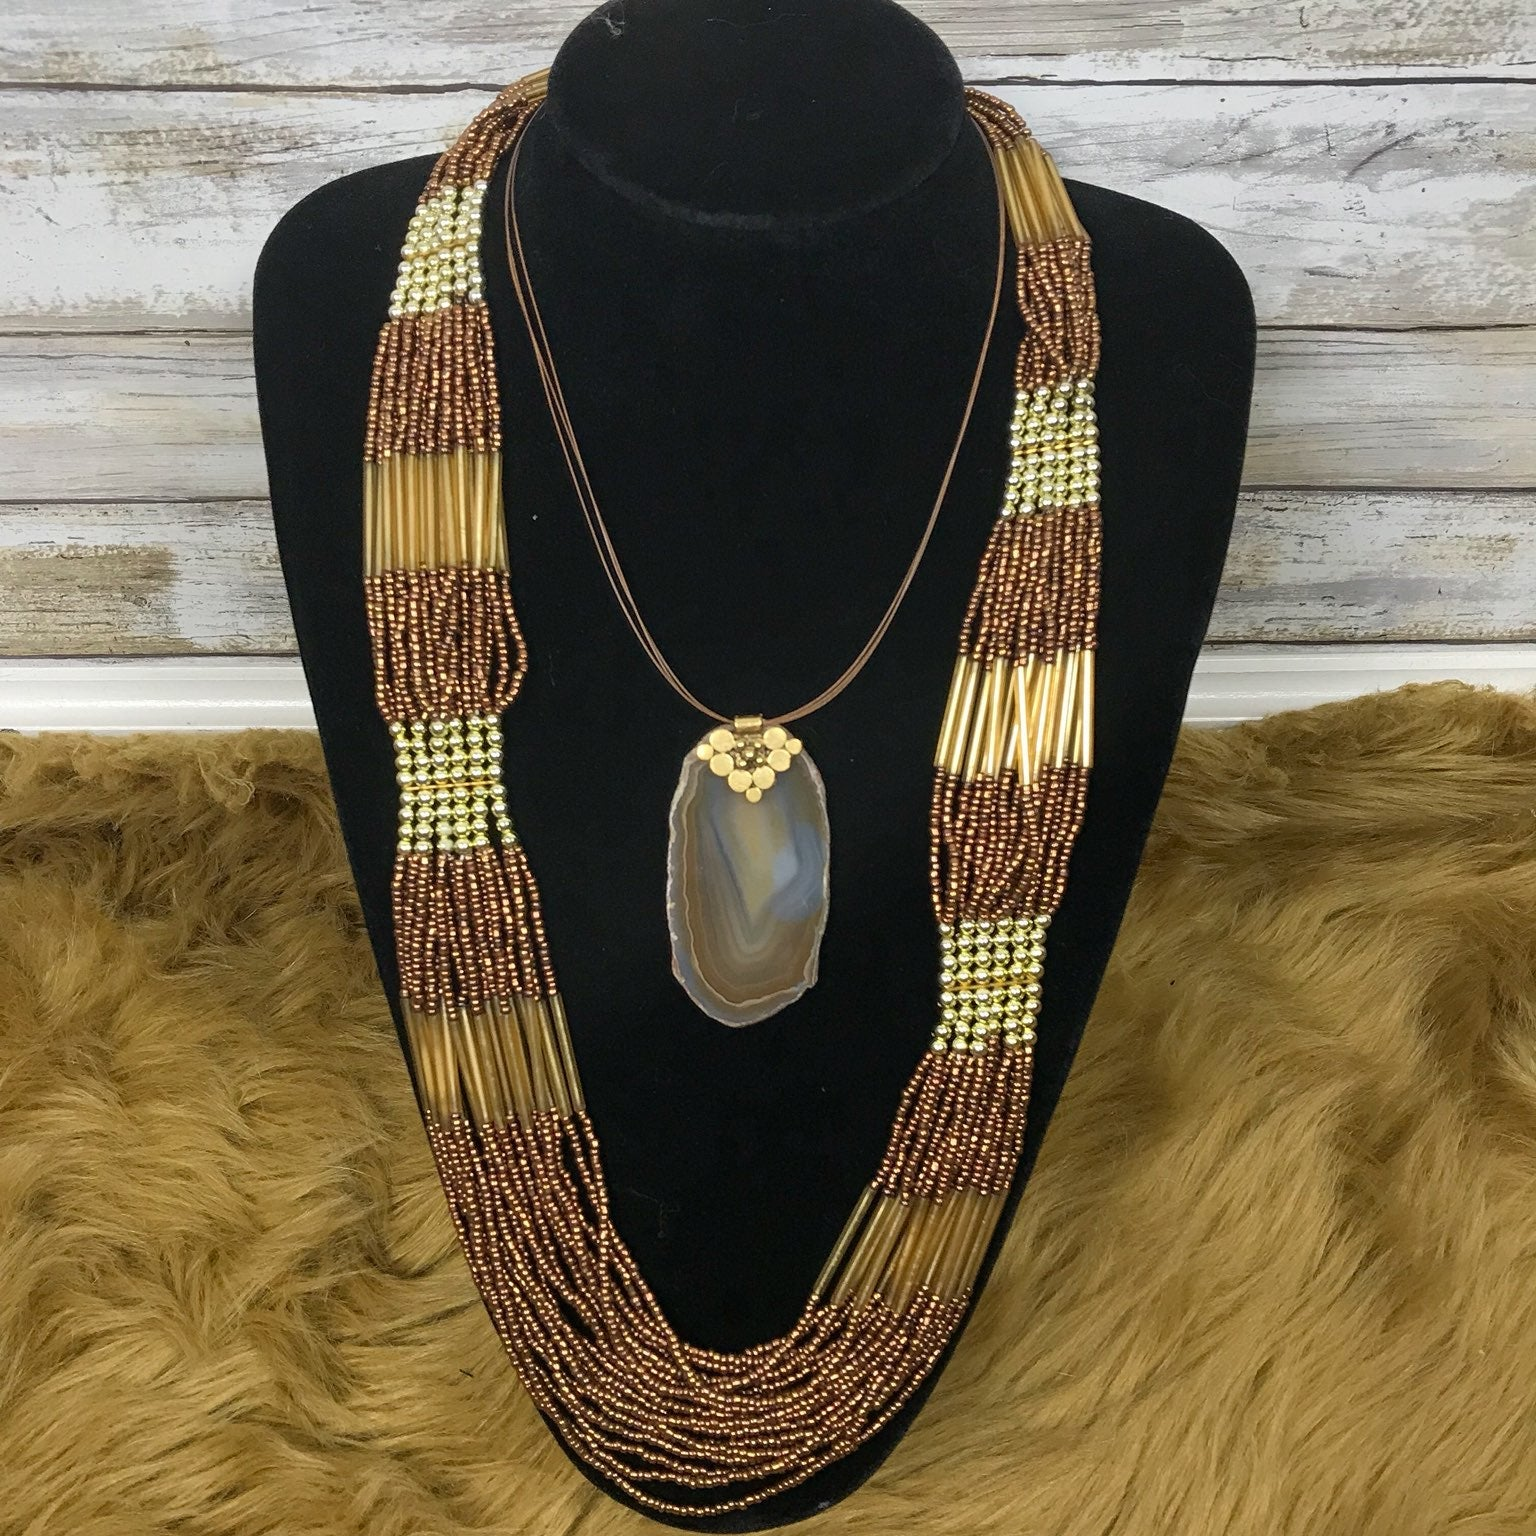 Lonnie Lovness Necklace & Bead Necklace